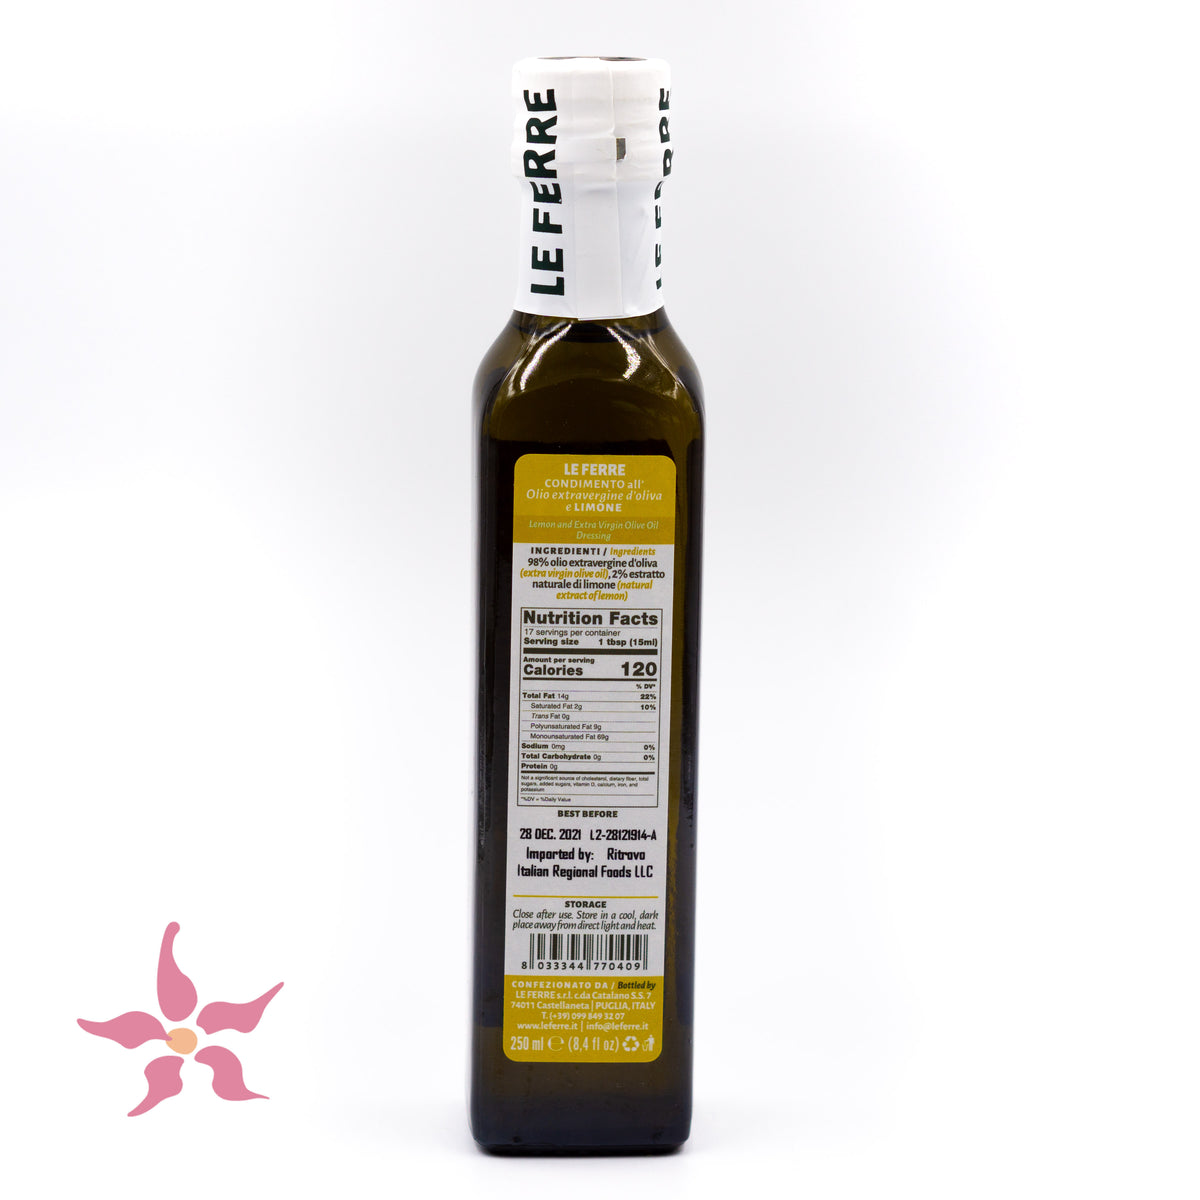 Lemon Infused Extra Virgin Olive Oil from Italy